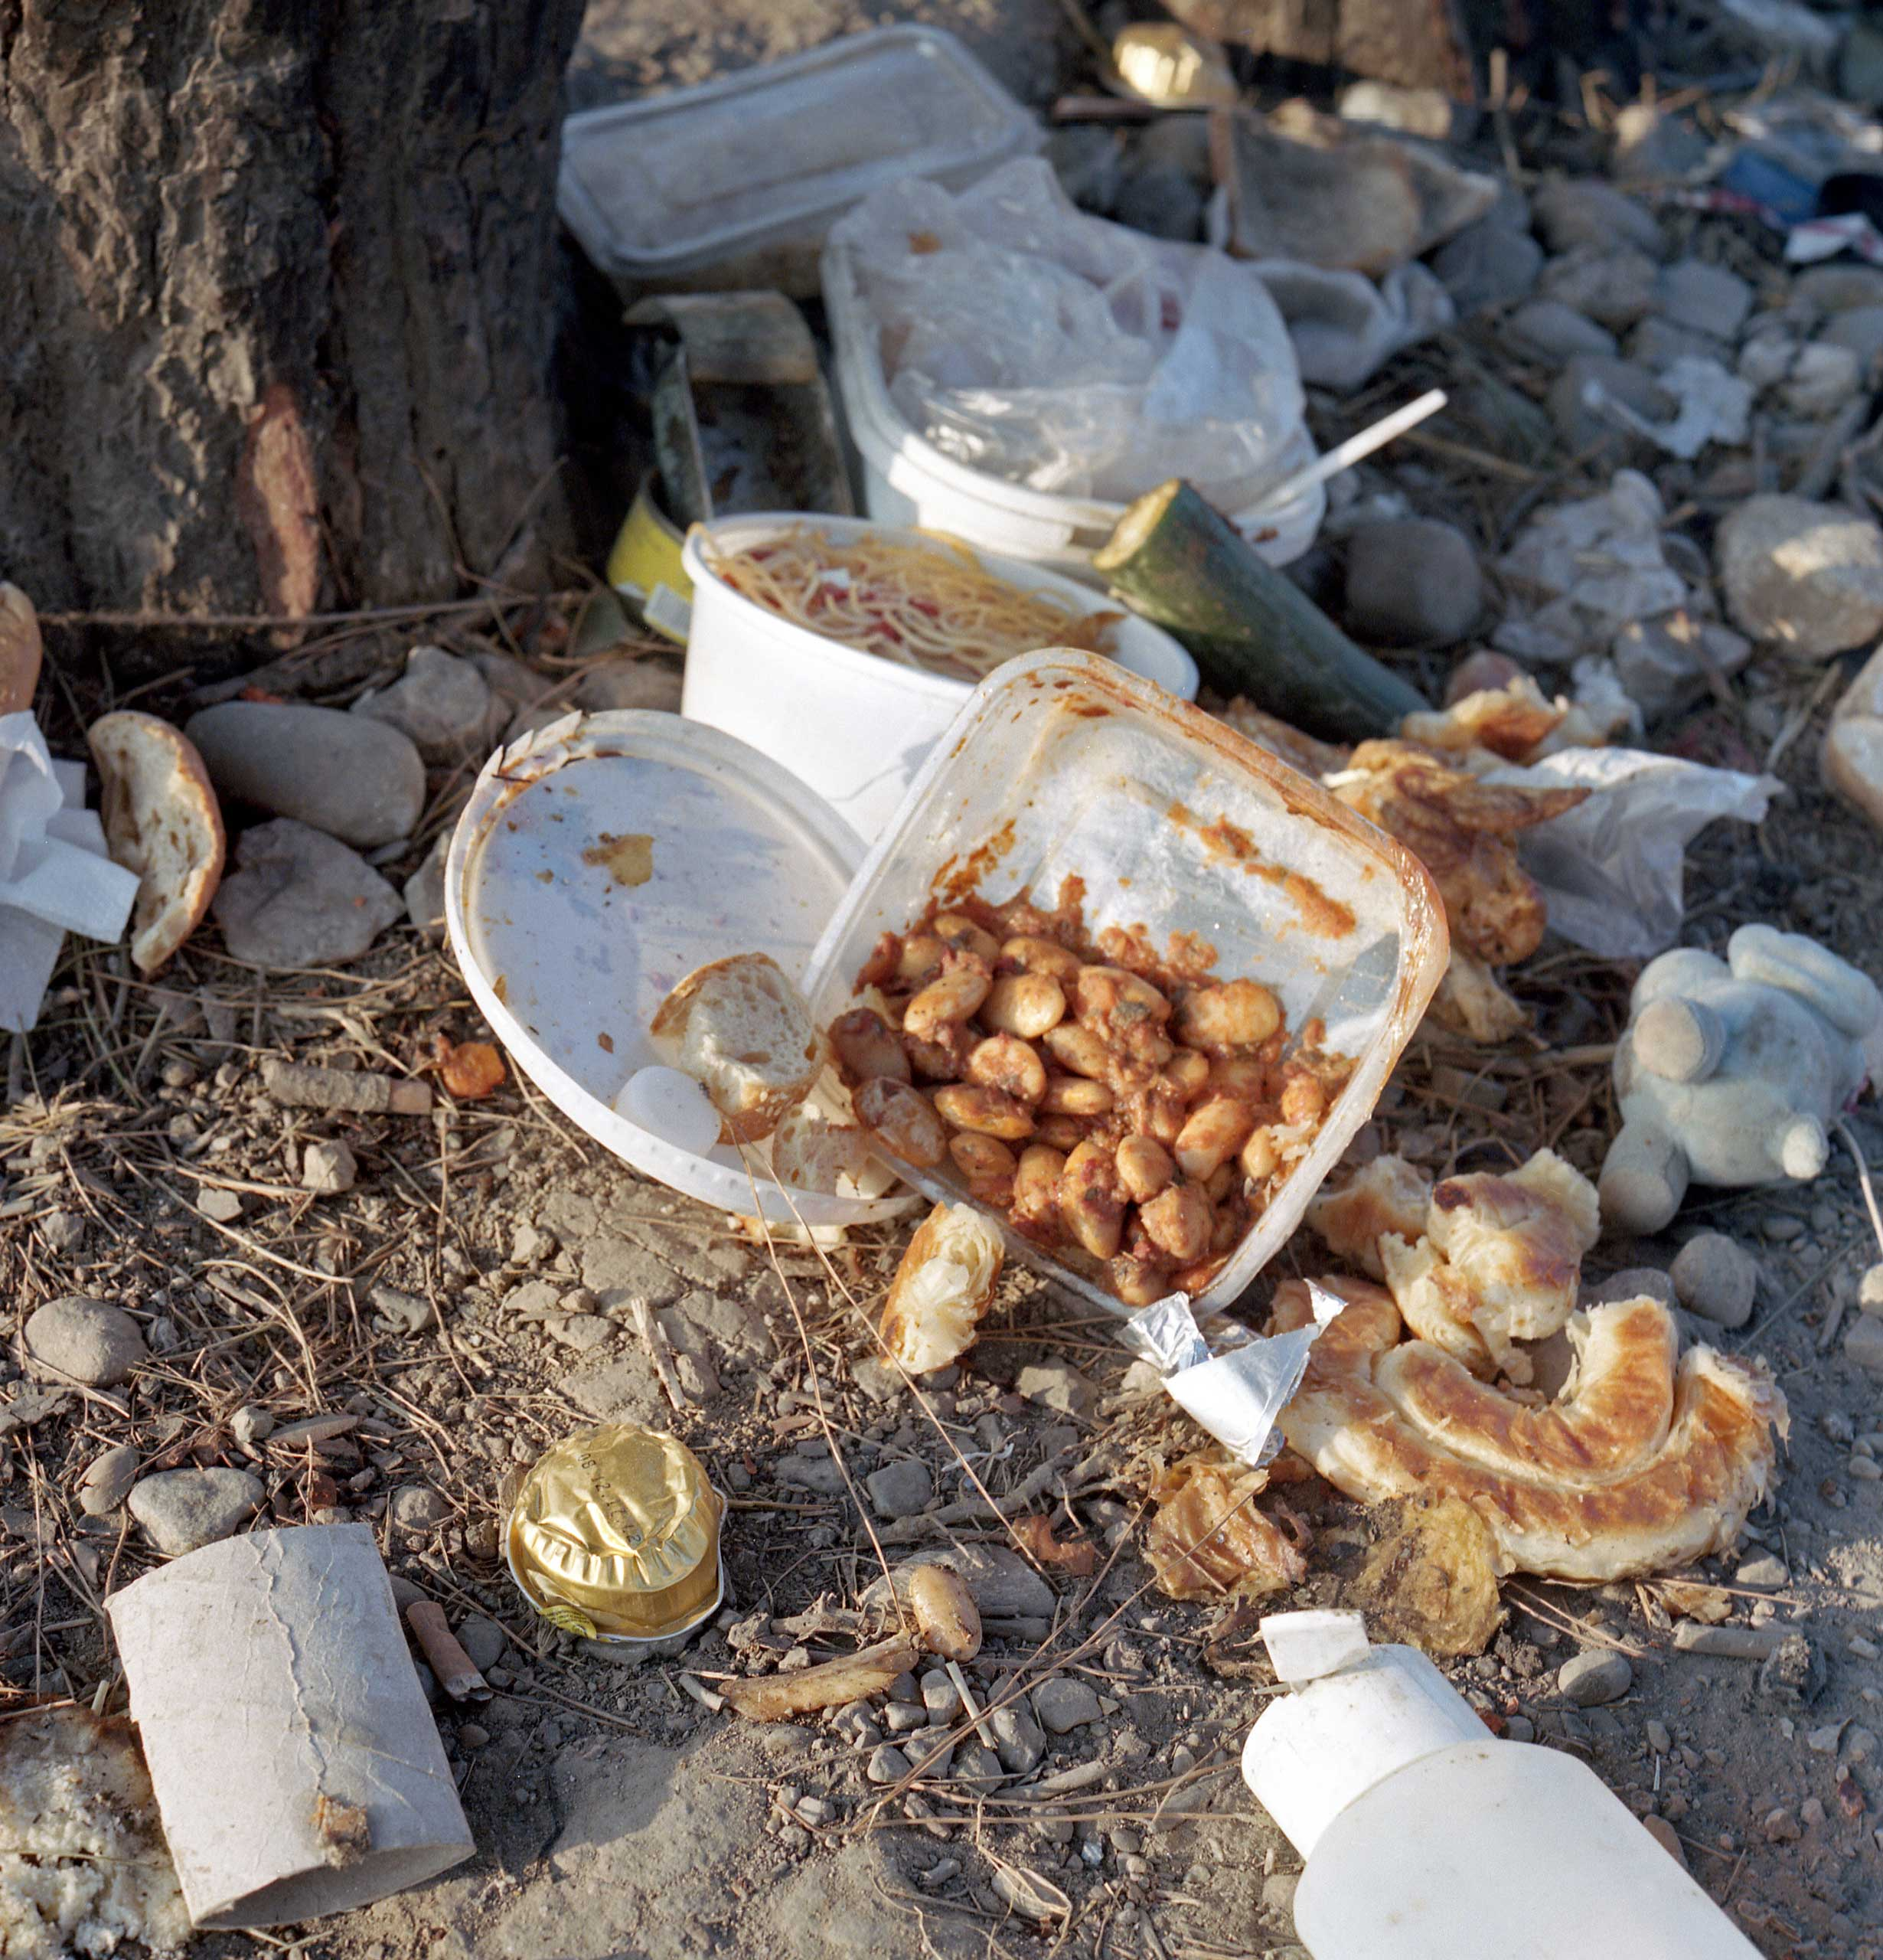 Left-overs of food used by refugees waiting in Idomeni, a town by the Greek-Macedonian border where roughly 400 people a day are waiting to cross into Macedonia to continue their journey into Western Europe. Greece, June 2015.